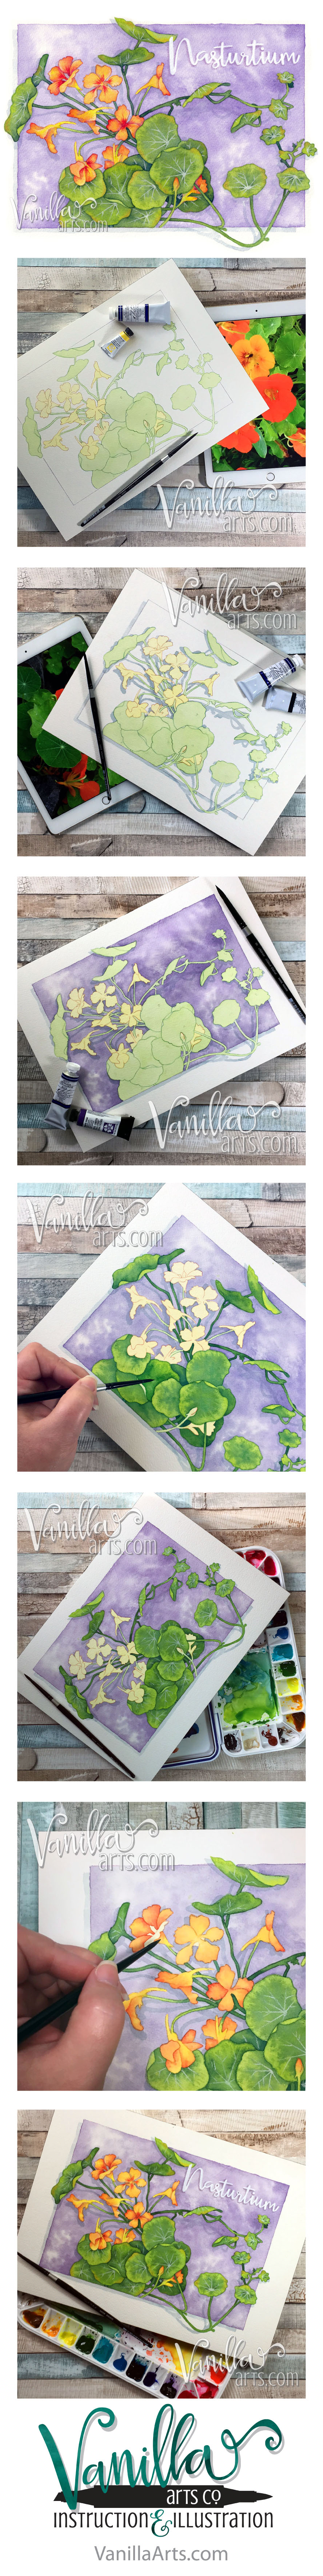 """Nasturtium"" a botanical watercolor for Sept 2016 h2Oh! class. Teaching Copic colorers to apply their skills to watercolor paints. 